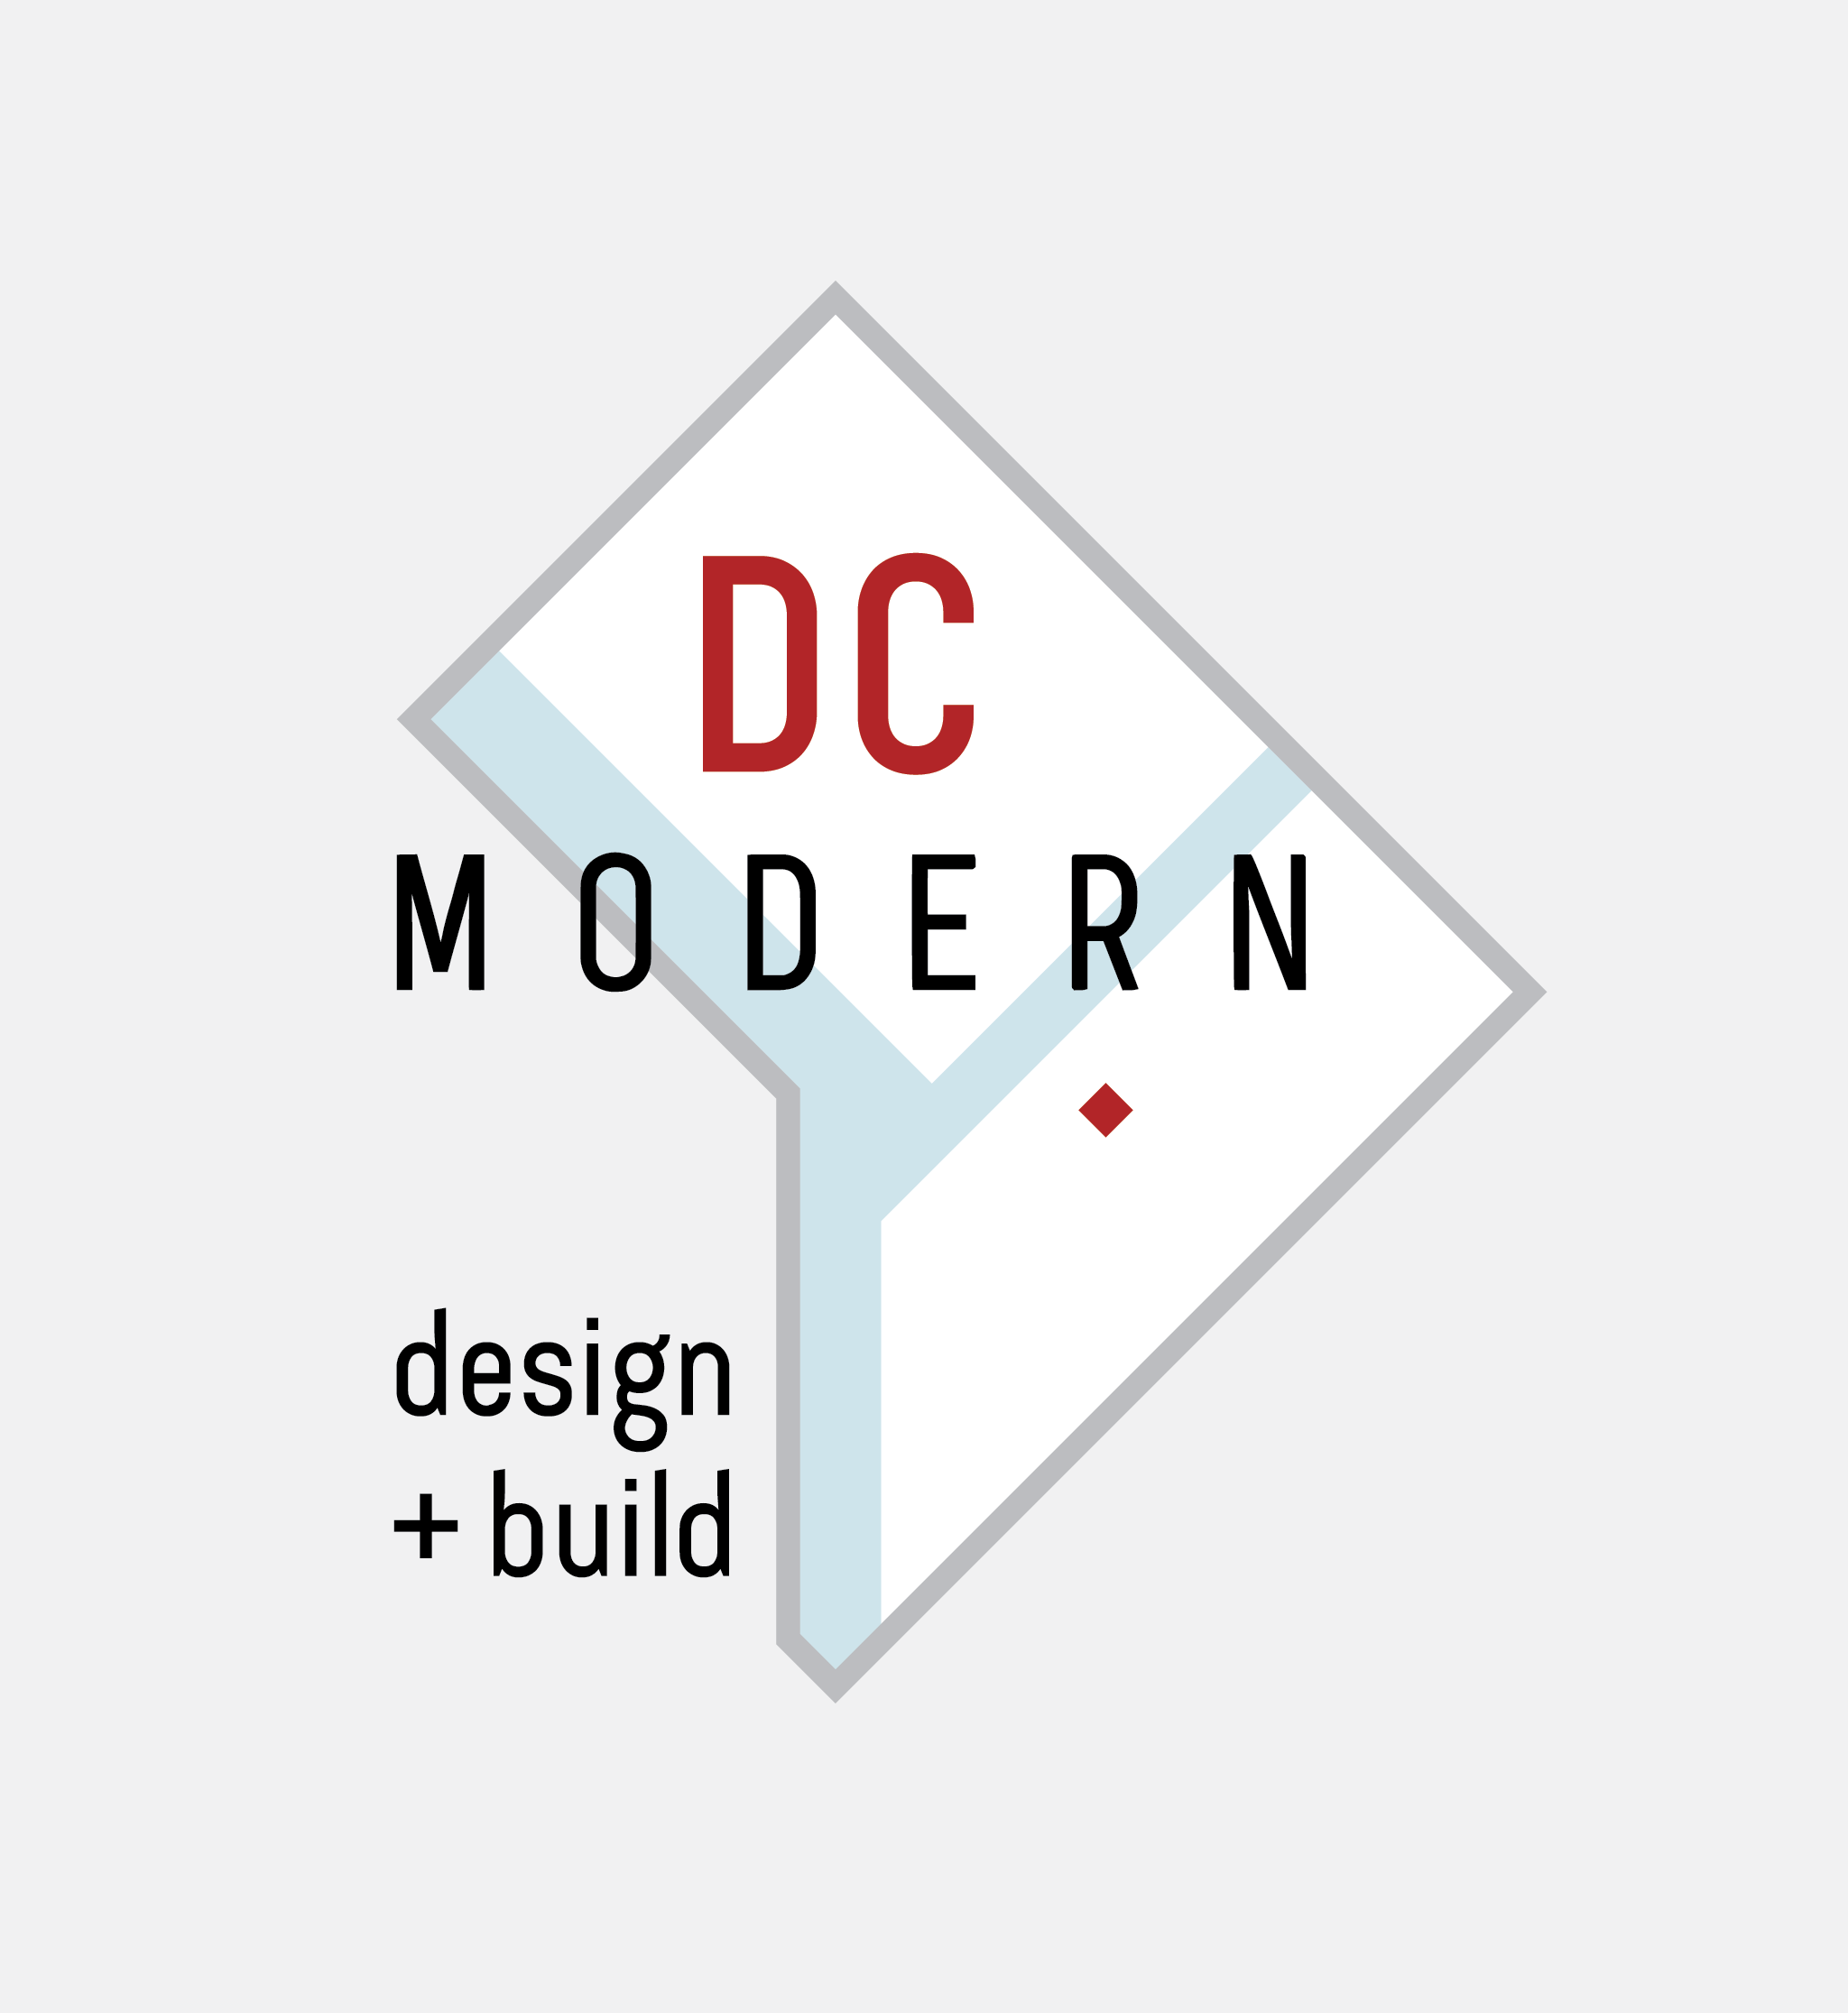 Logo for DC Modern architecture and construction company. Features a geometric abstraction of Washington, DC